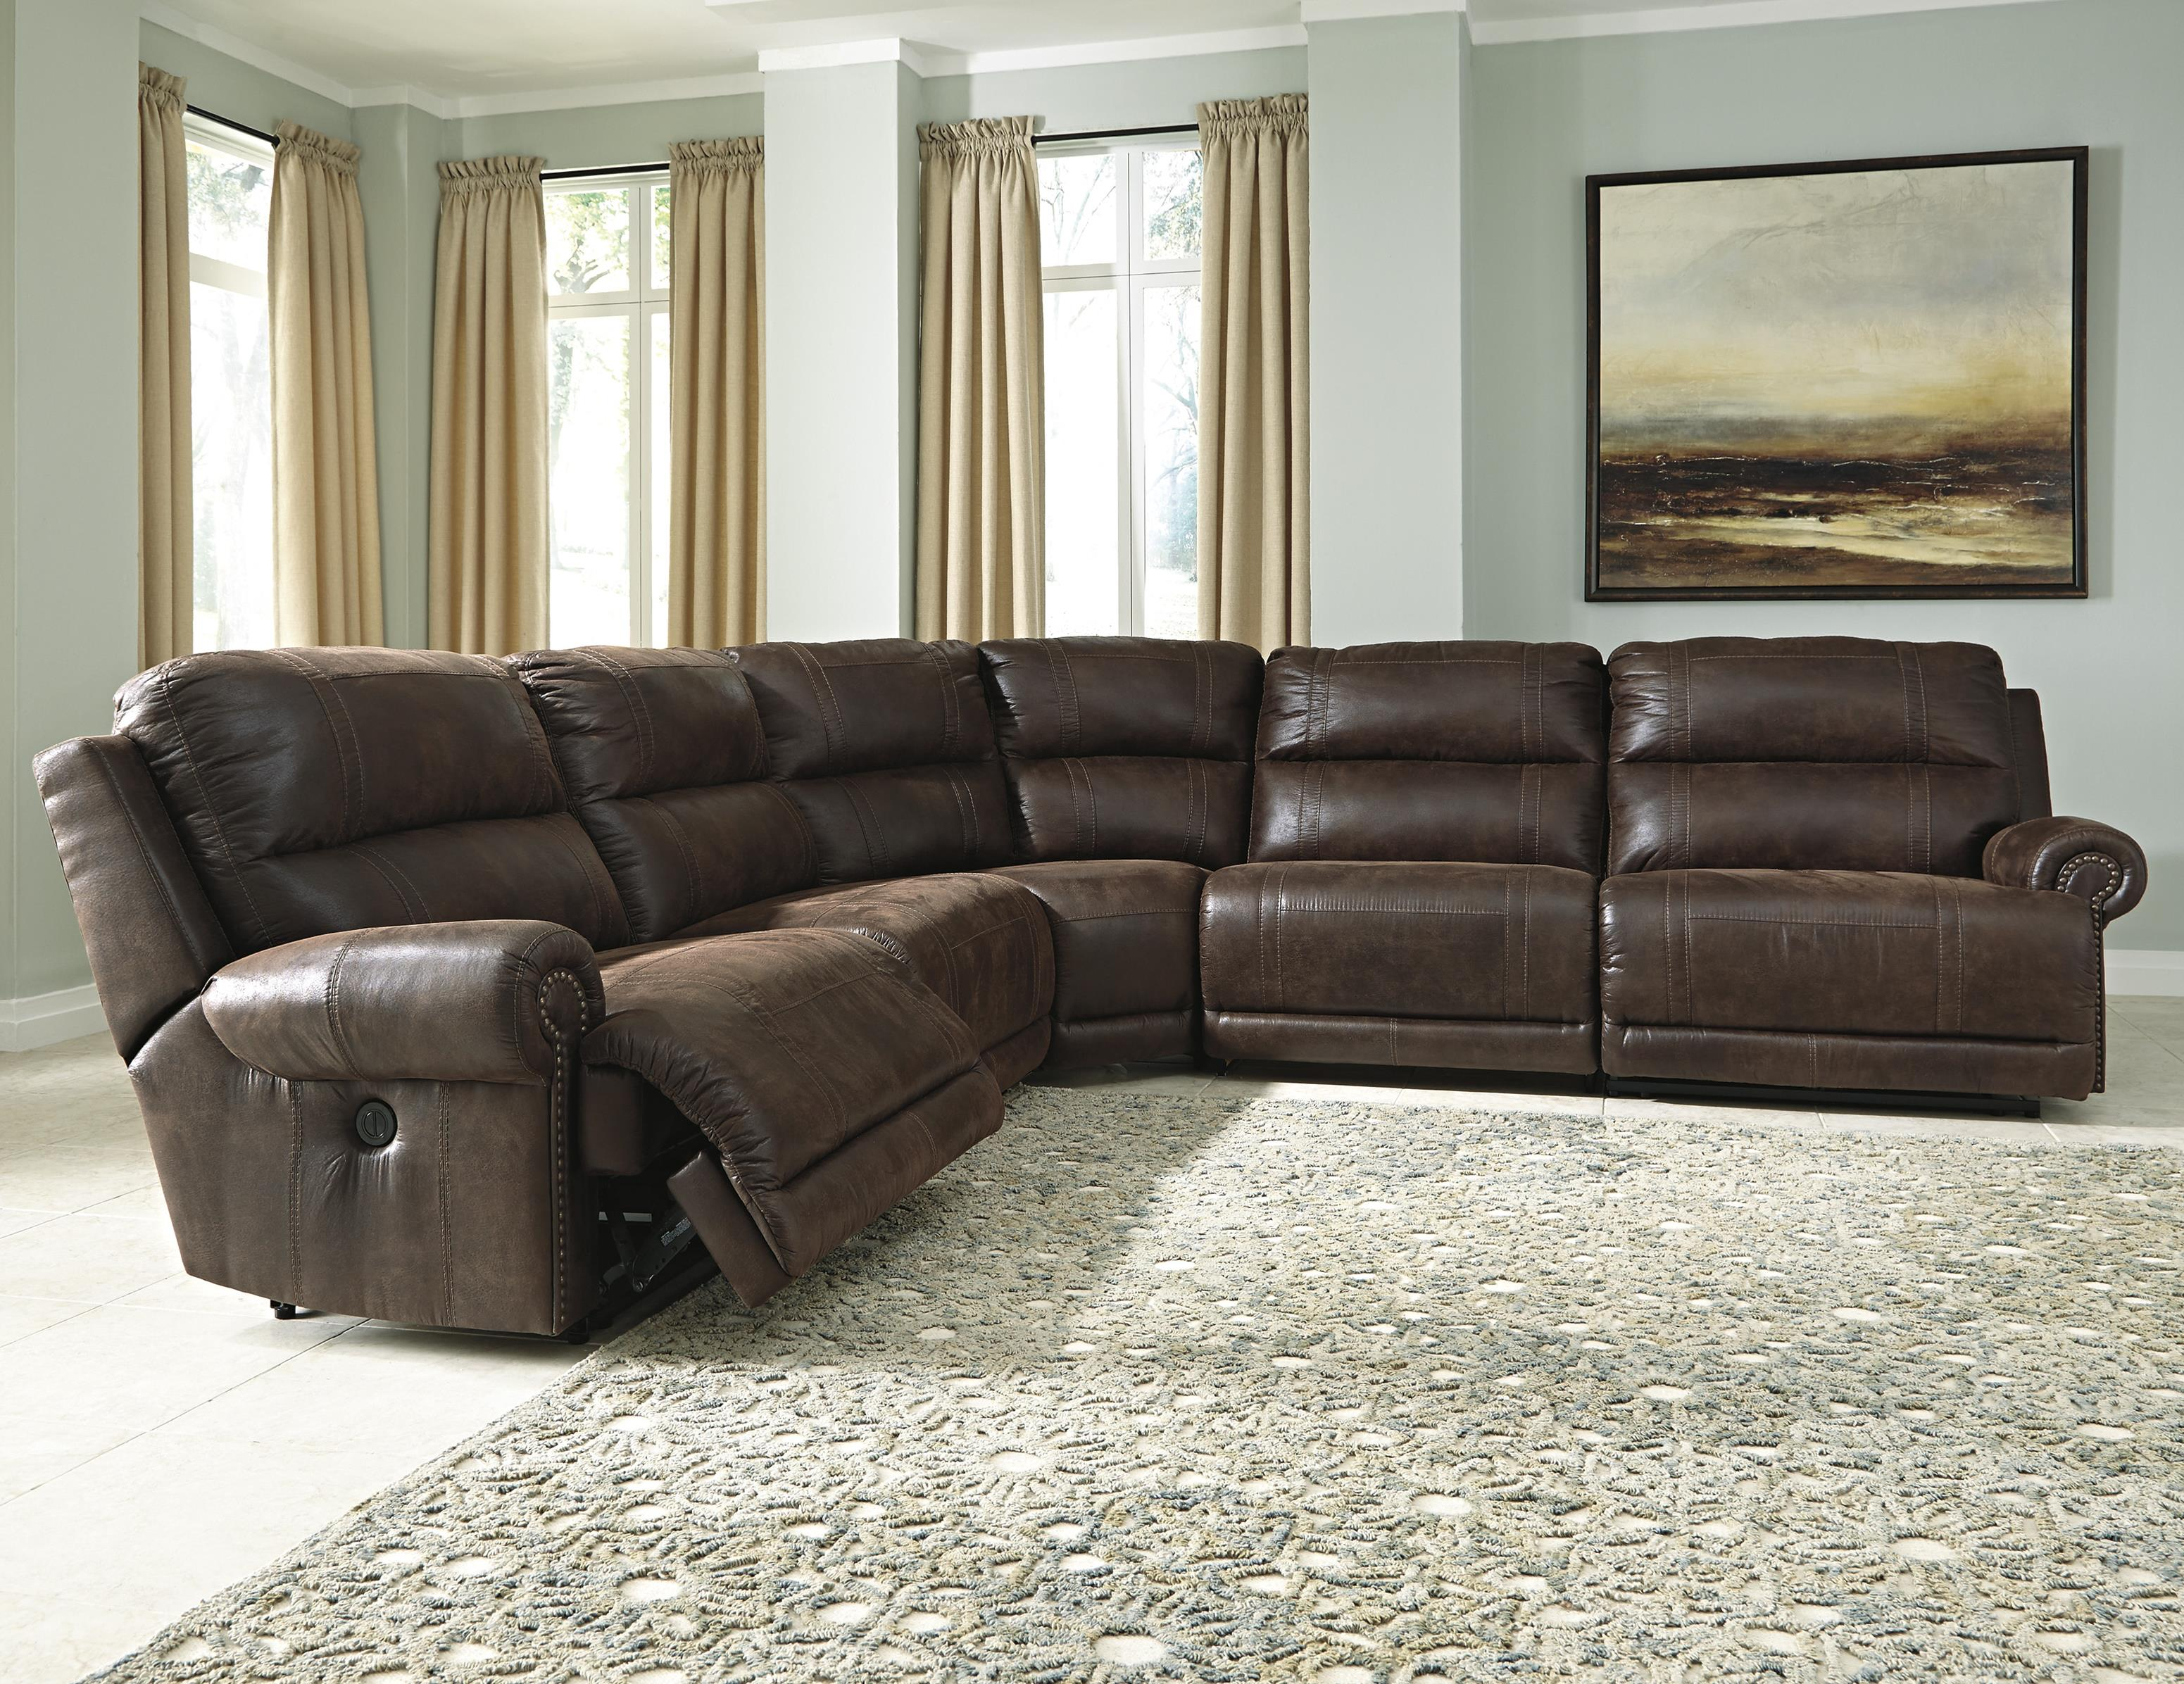 Luttrell 5-Piece Reclining Sectional by Signature Design by Ashley at Lapeer Furniture & Mattress Center